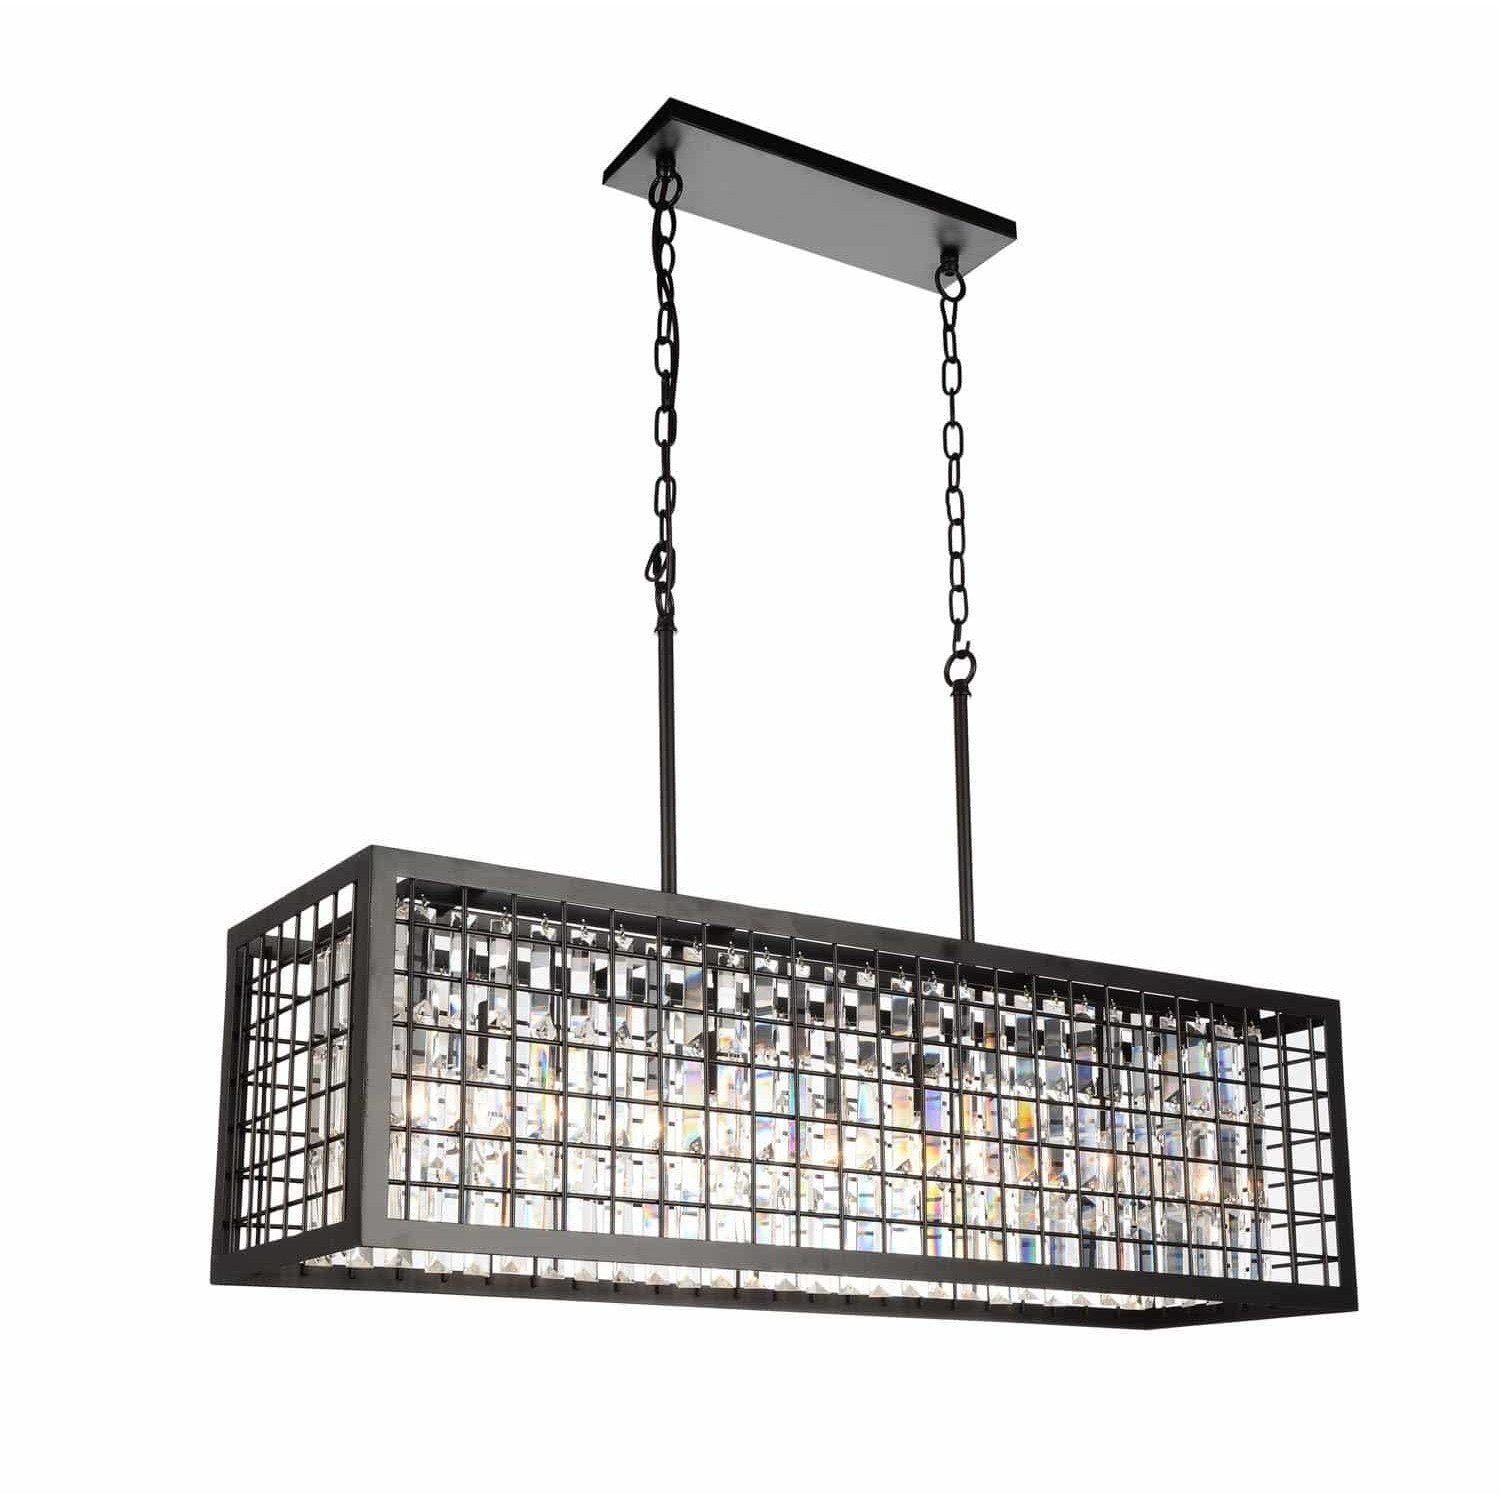 CWI Lighting Chandeliers Brown / K9 Clear Meghna 4 Light Down Chandelier with Brown finish by CWI Lighting 9697P36-4-192